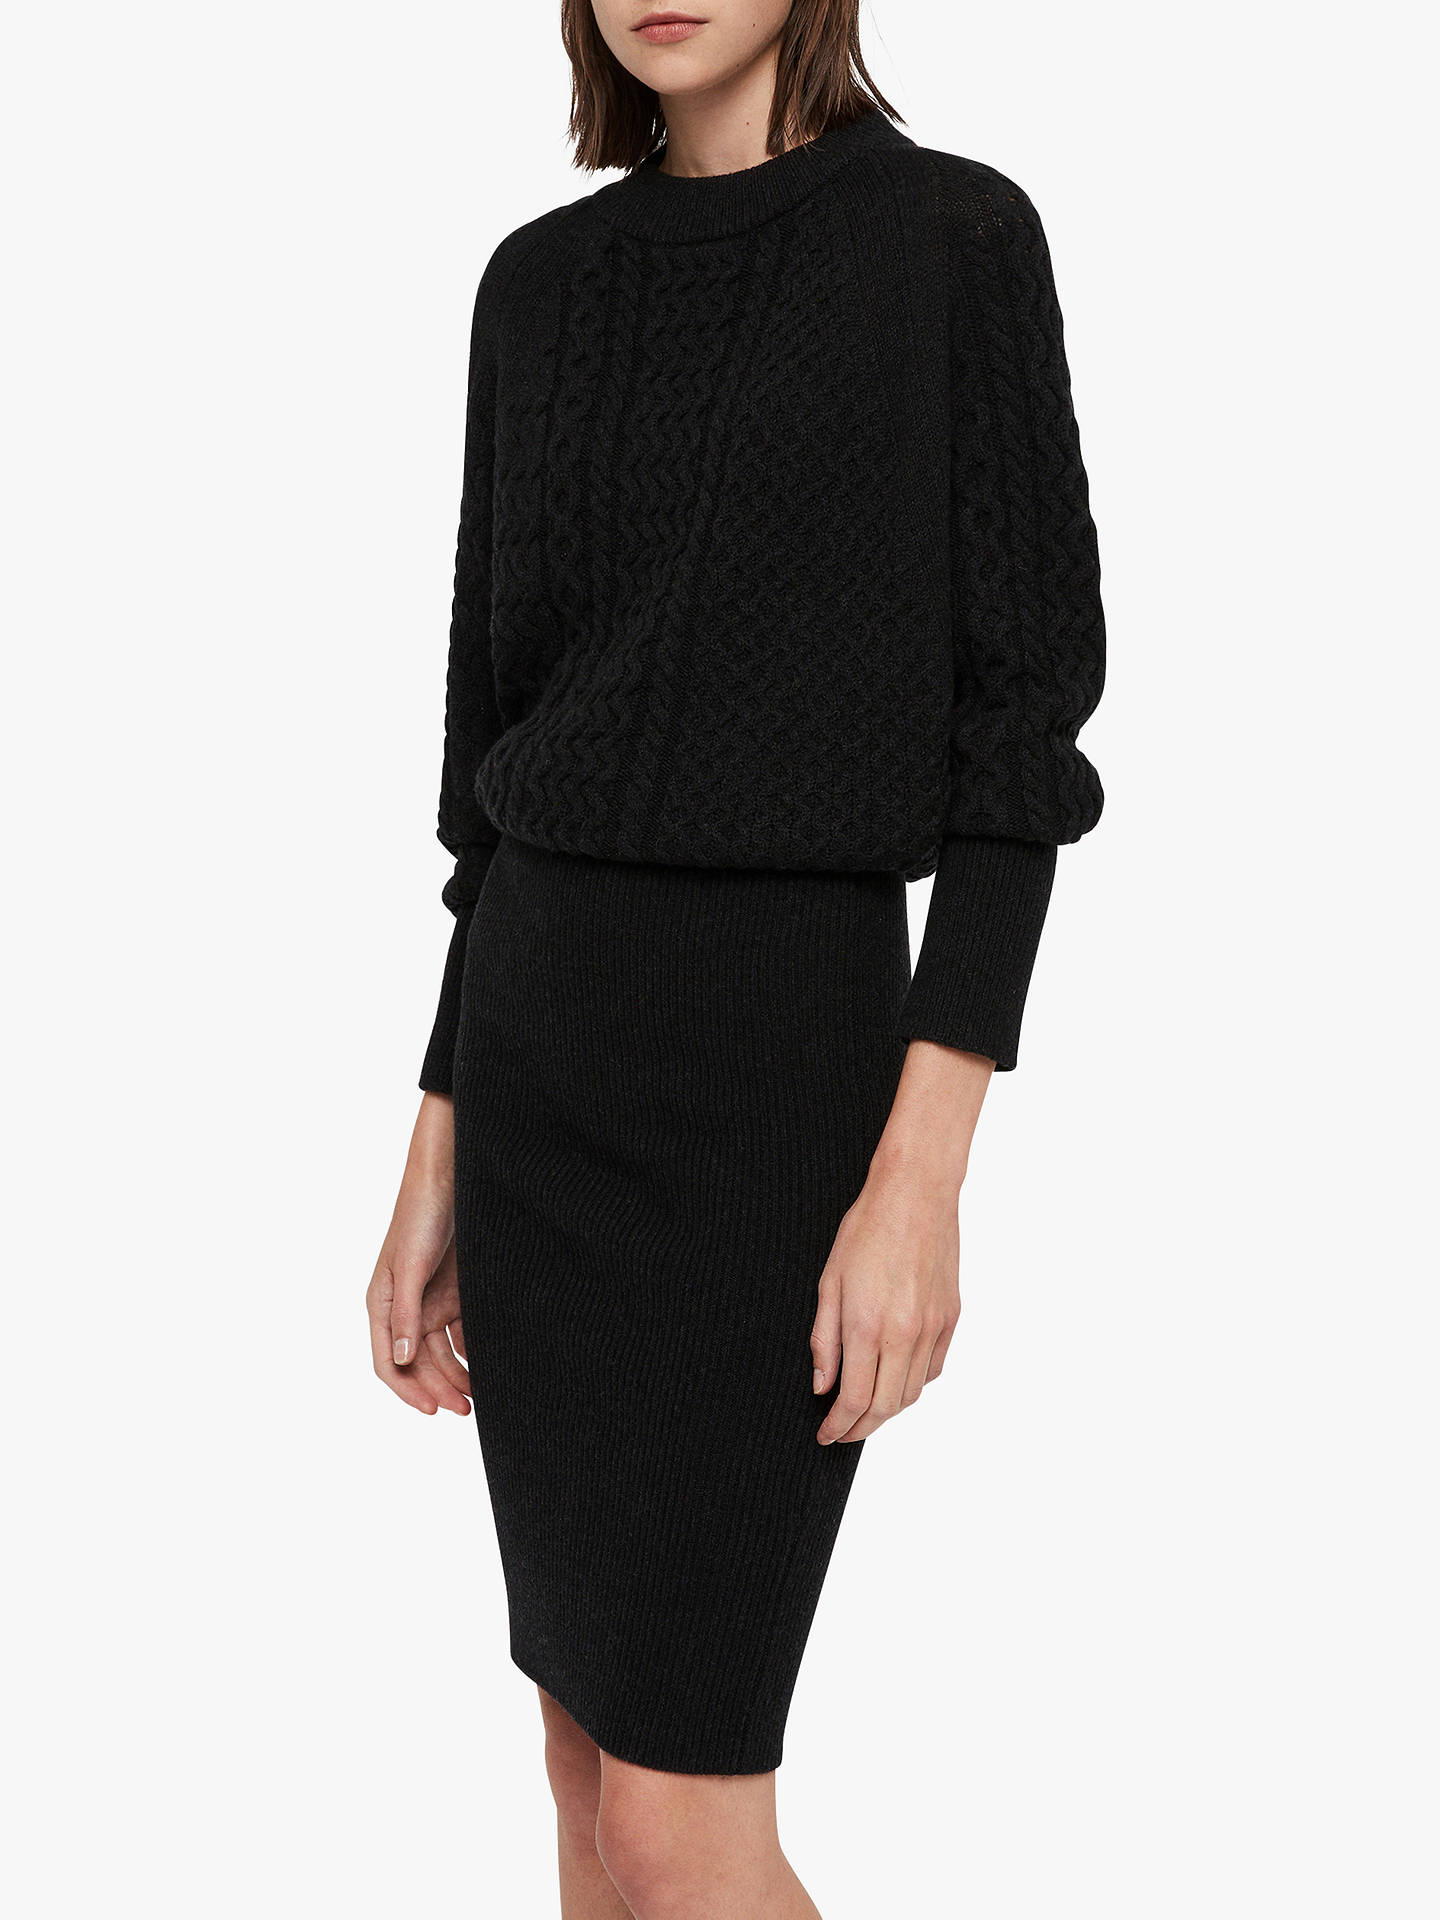 BuyAllSaints Dilone Knitted Dress, Cinder Black Marl, XS Online at johnlewis.com